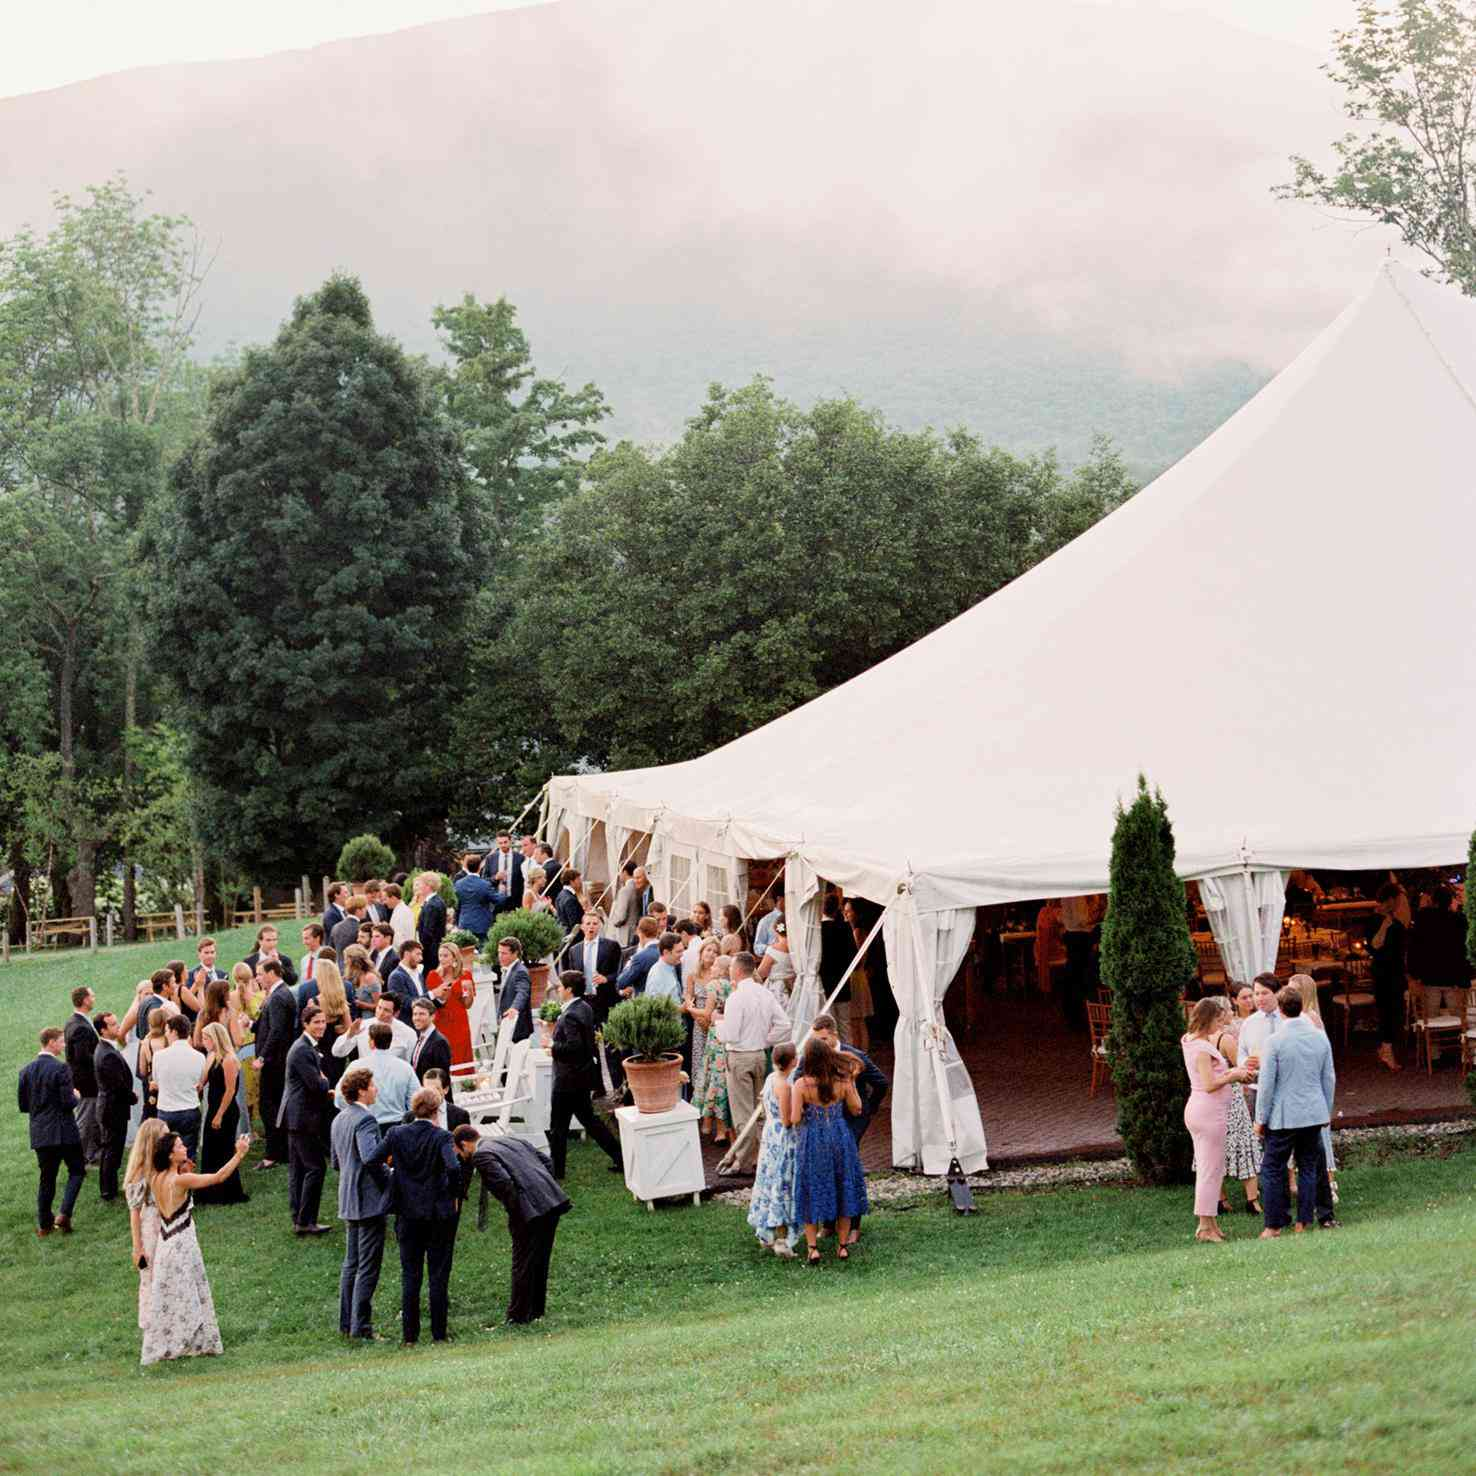 Outdoor Wedding Ceremony No Music: 7 Dos And Don'ts Of Outdoor Wedding Cocktail Hours